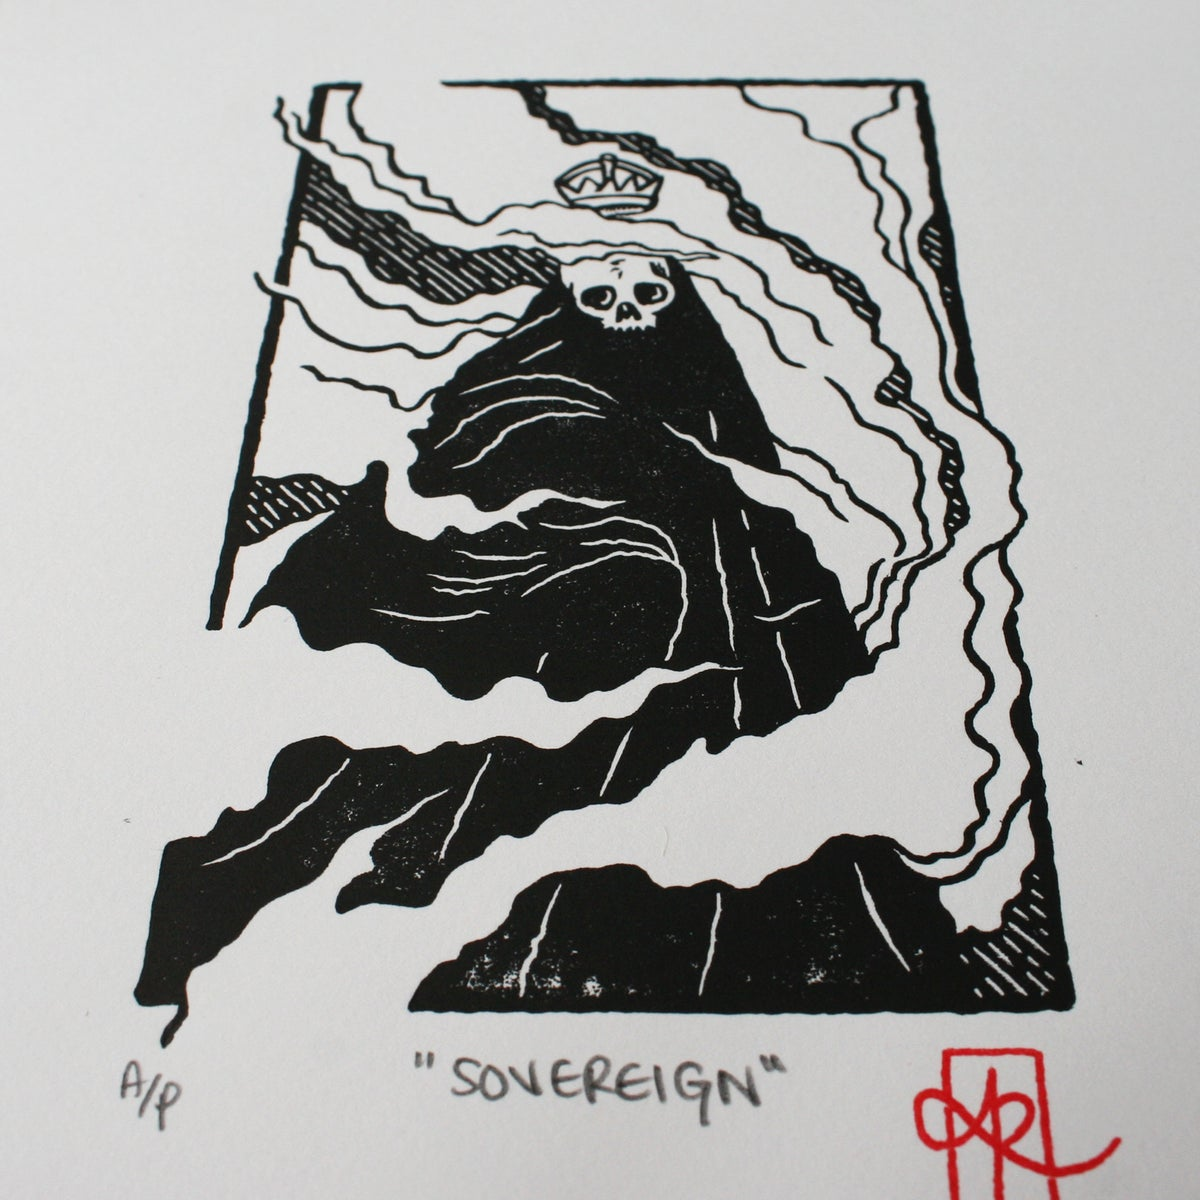 Sovereign (artist proofs)